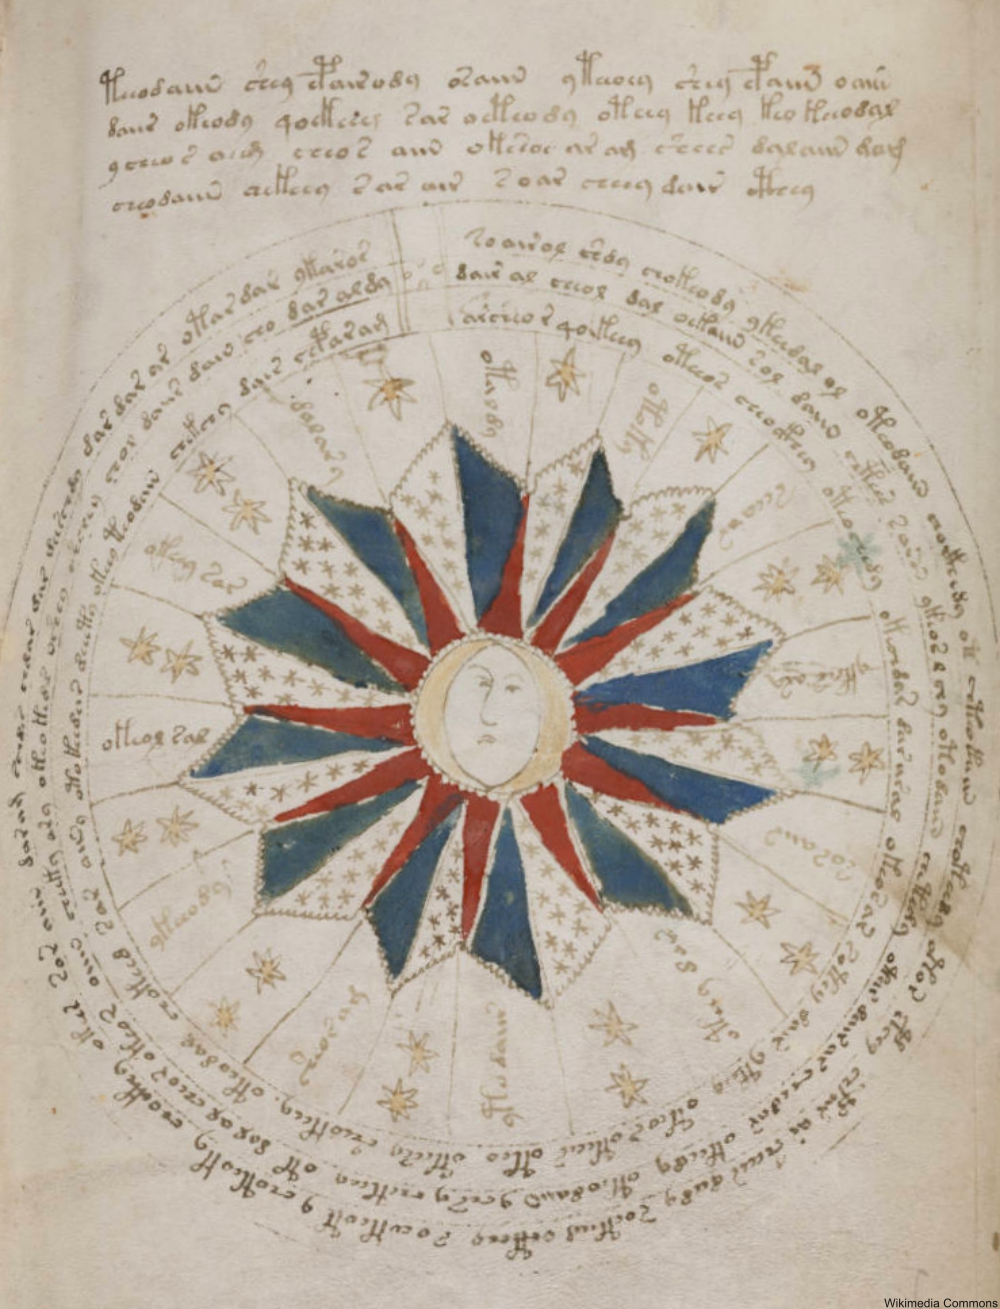 The Mysterious Voynich Manuscript Is Still Stmpuing Code Breakers 600 Years Later